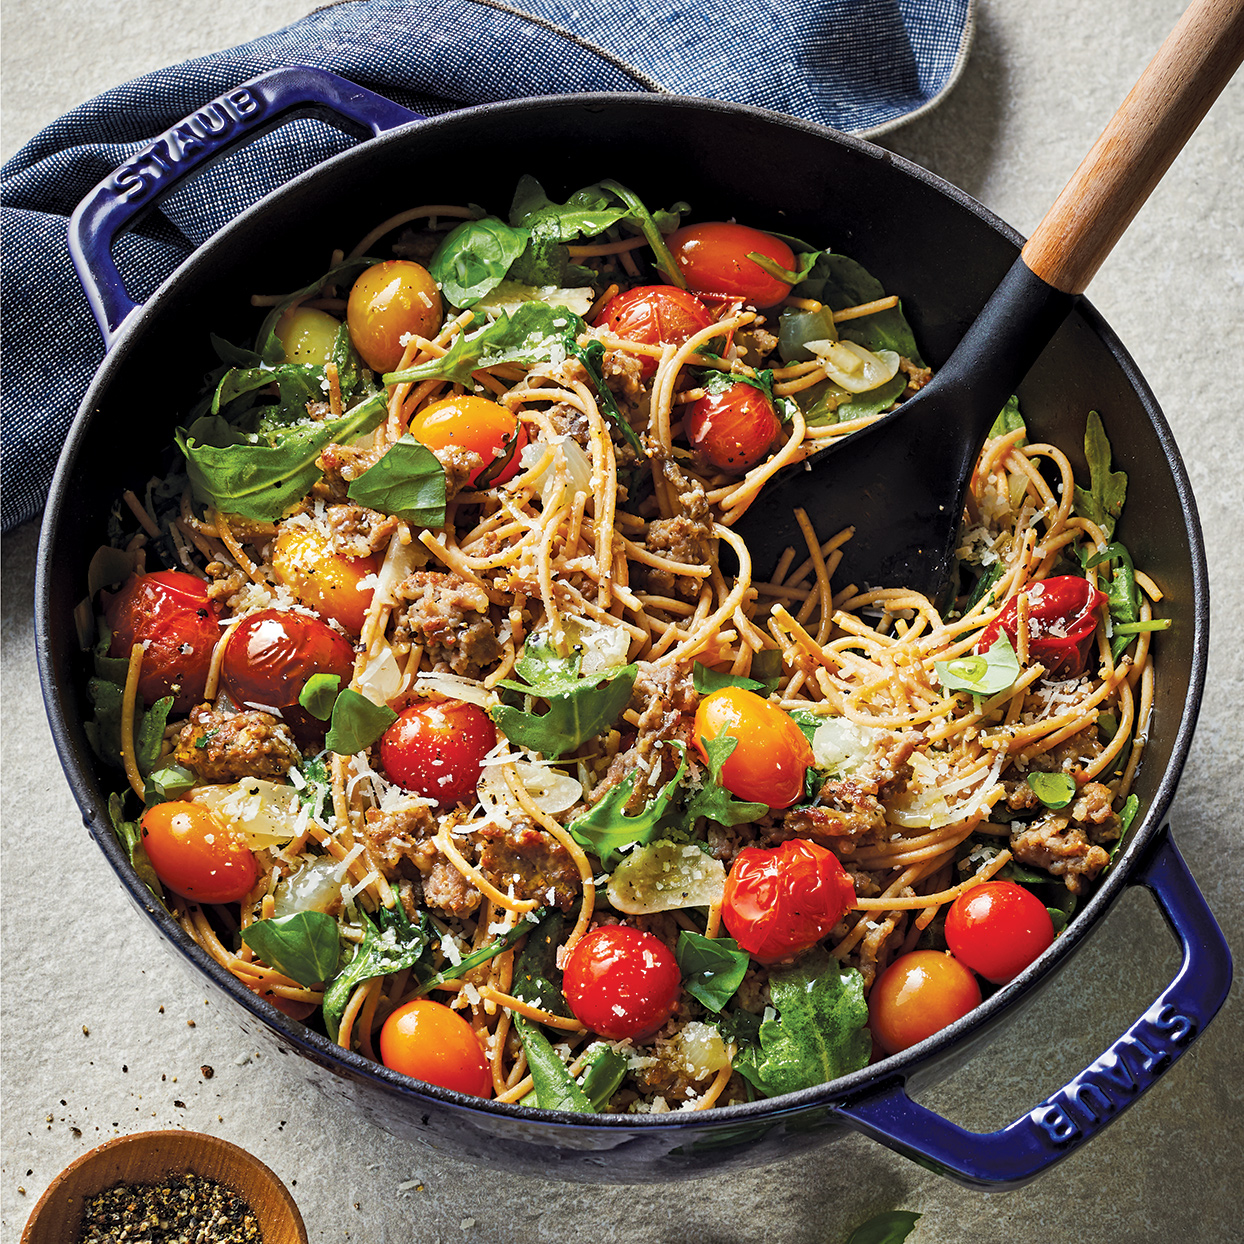 Whole-Grain Spaghetti with Italian Turkey Sausage, Arugula & Balsamic Tomato Sauce Cooking Light